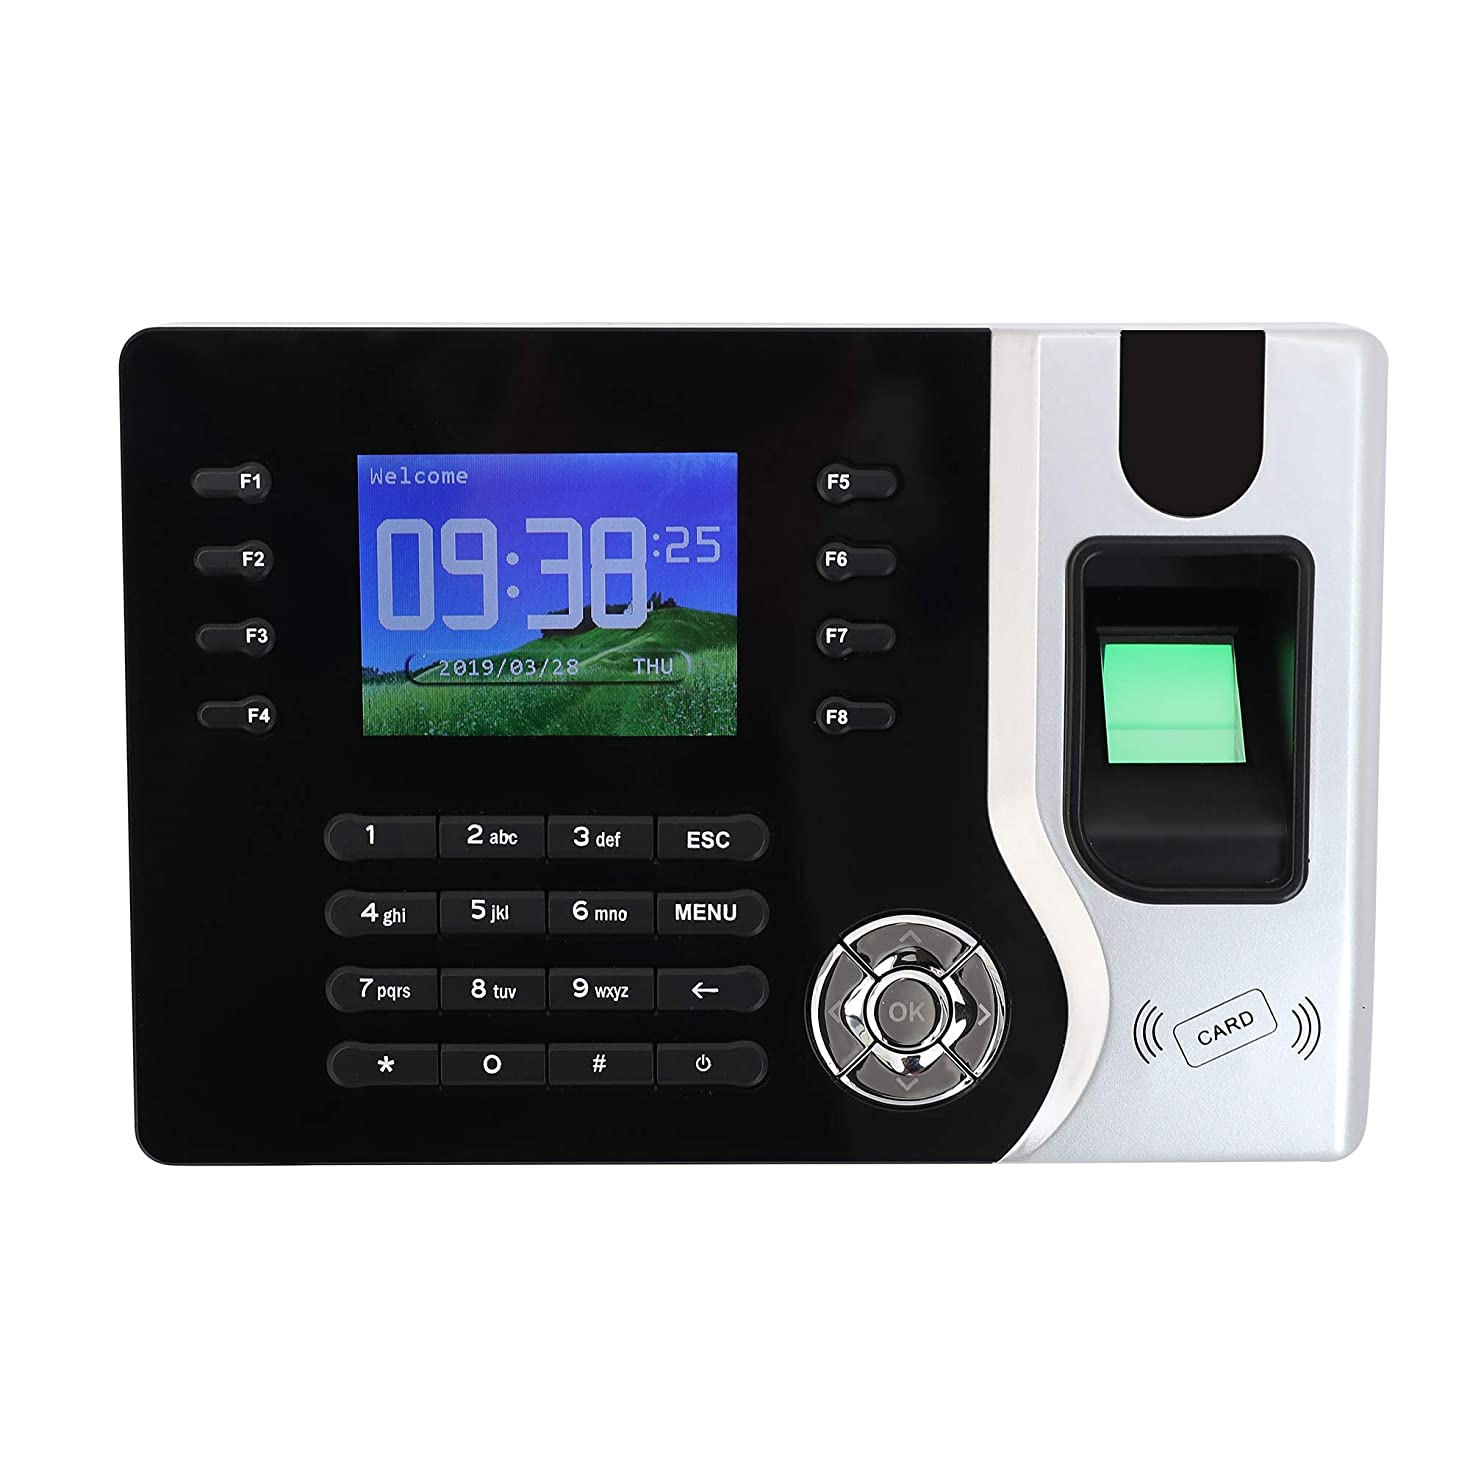 Biometric Time Clock with ID Card - Timeclocks for Business Helps You to Keep Your Business Salary Well Organized, Very Easy to Operate - just Plug and Play! Wise buy